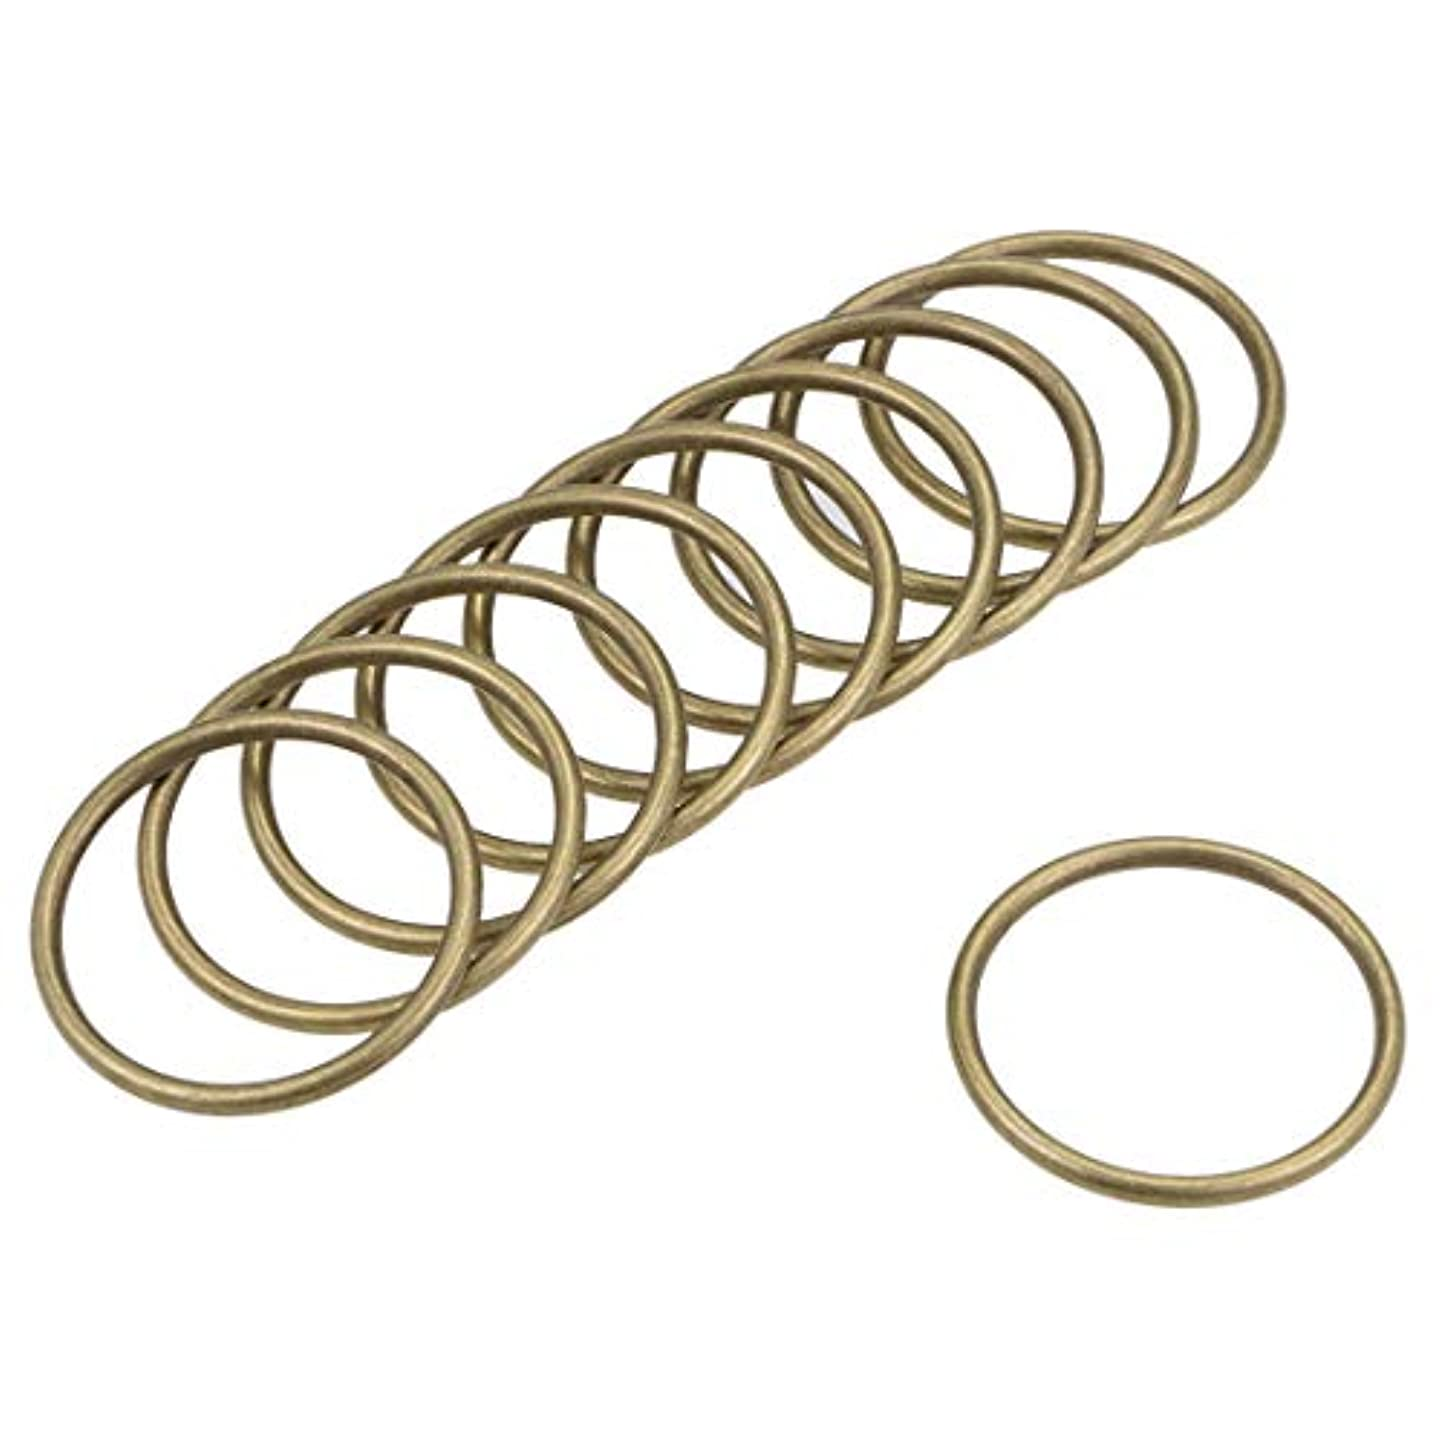 uxcell 10 Pcs O Ring Buckle 1.4-Inch(35mm) Metal O-Rings Bronze Tone for Hardware Bags Belts Craft DIY Accessories